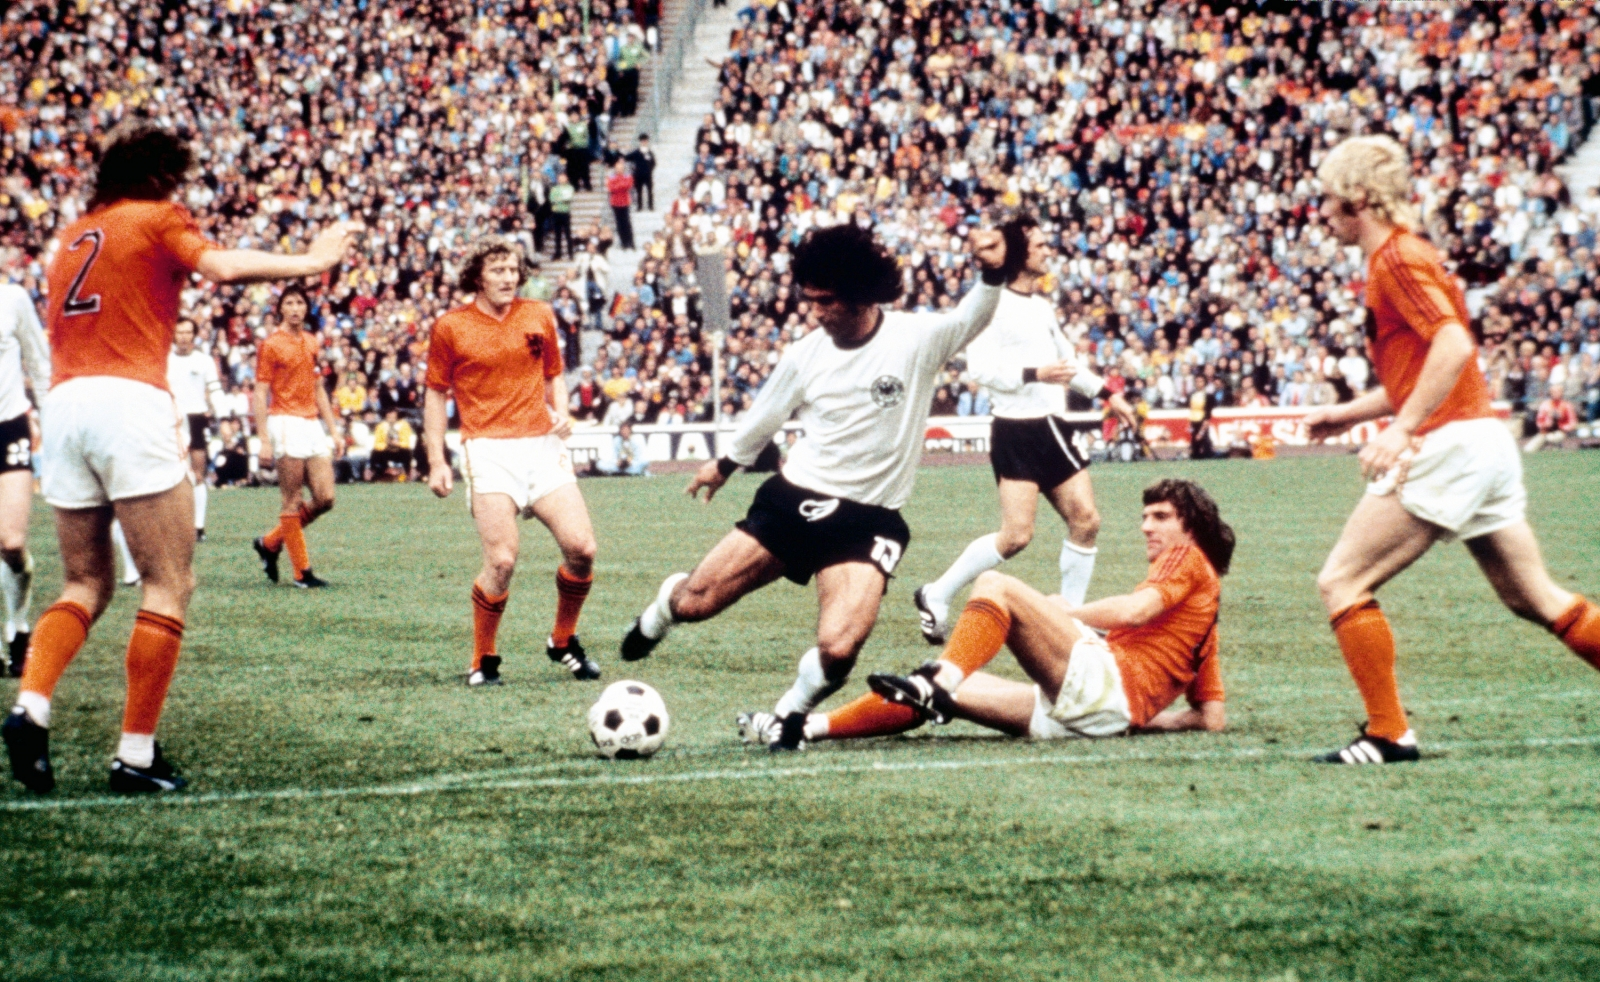 How Gerd Müller s 1971 72 season propelled him to greatness